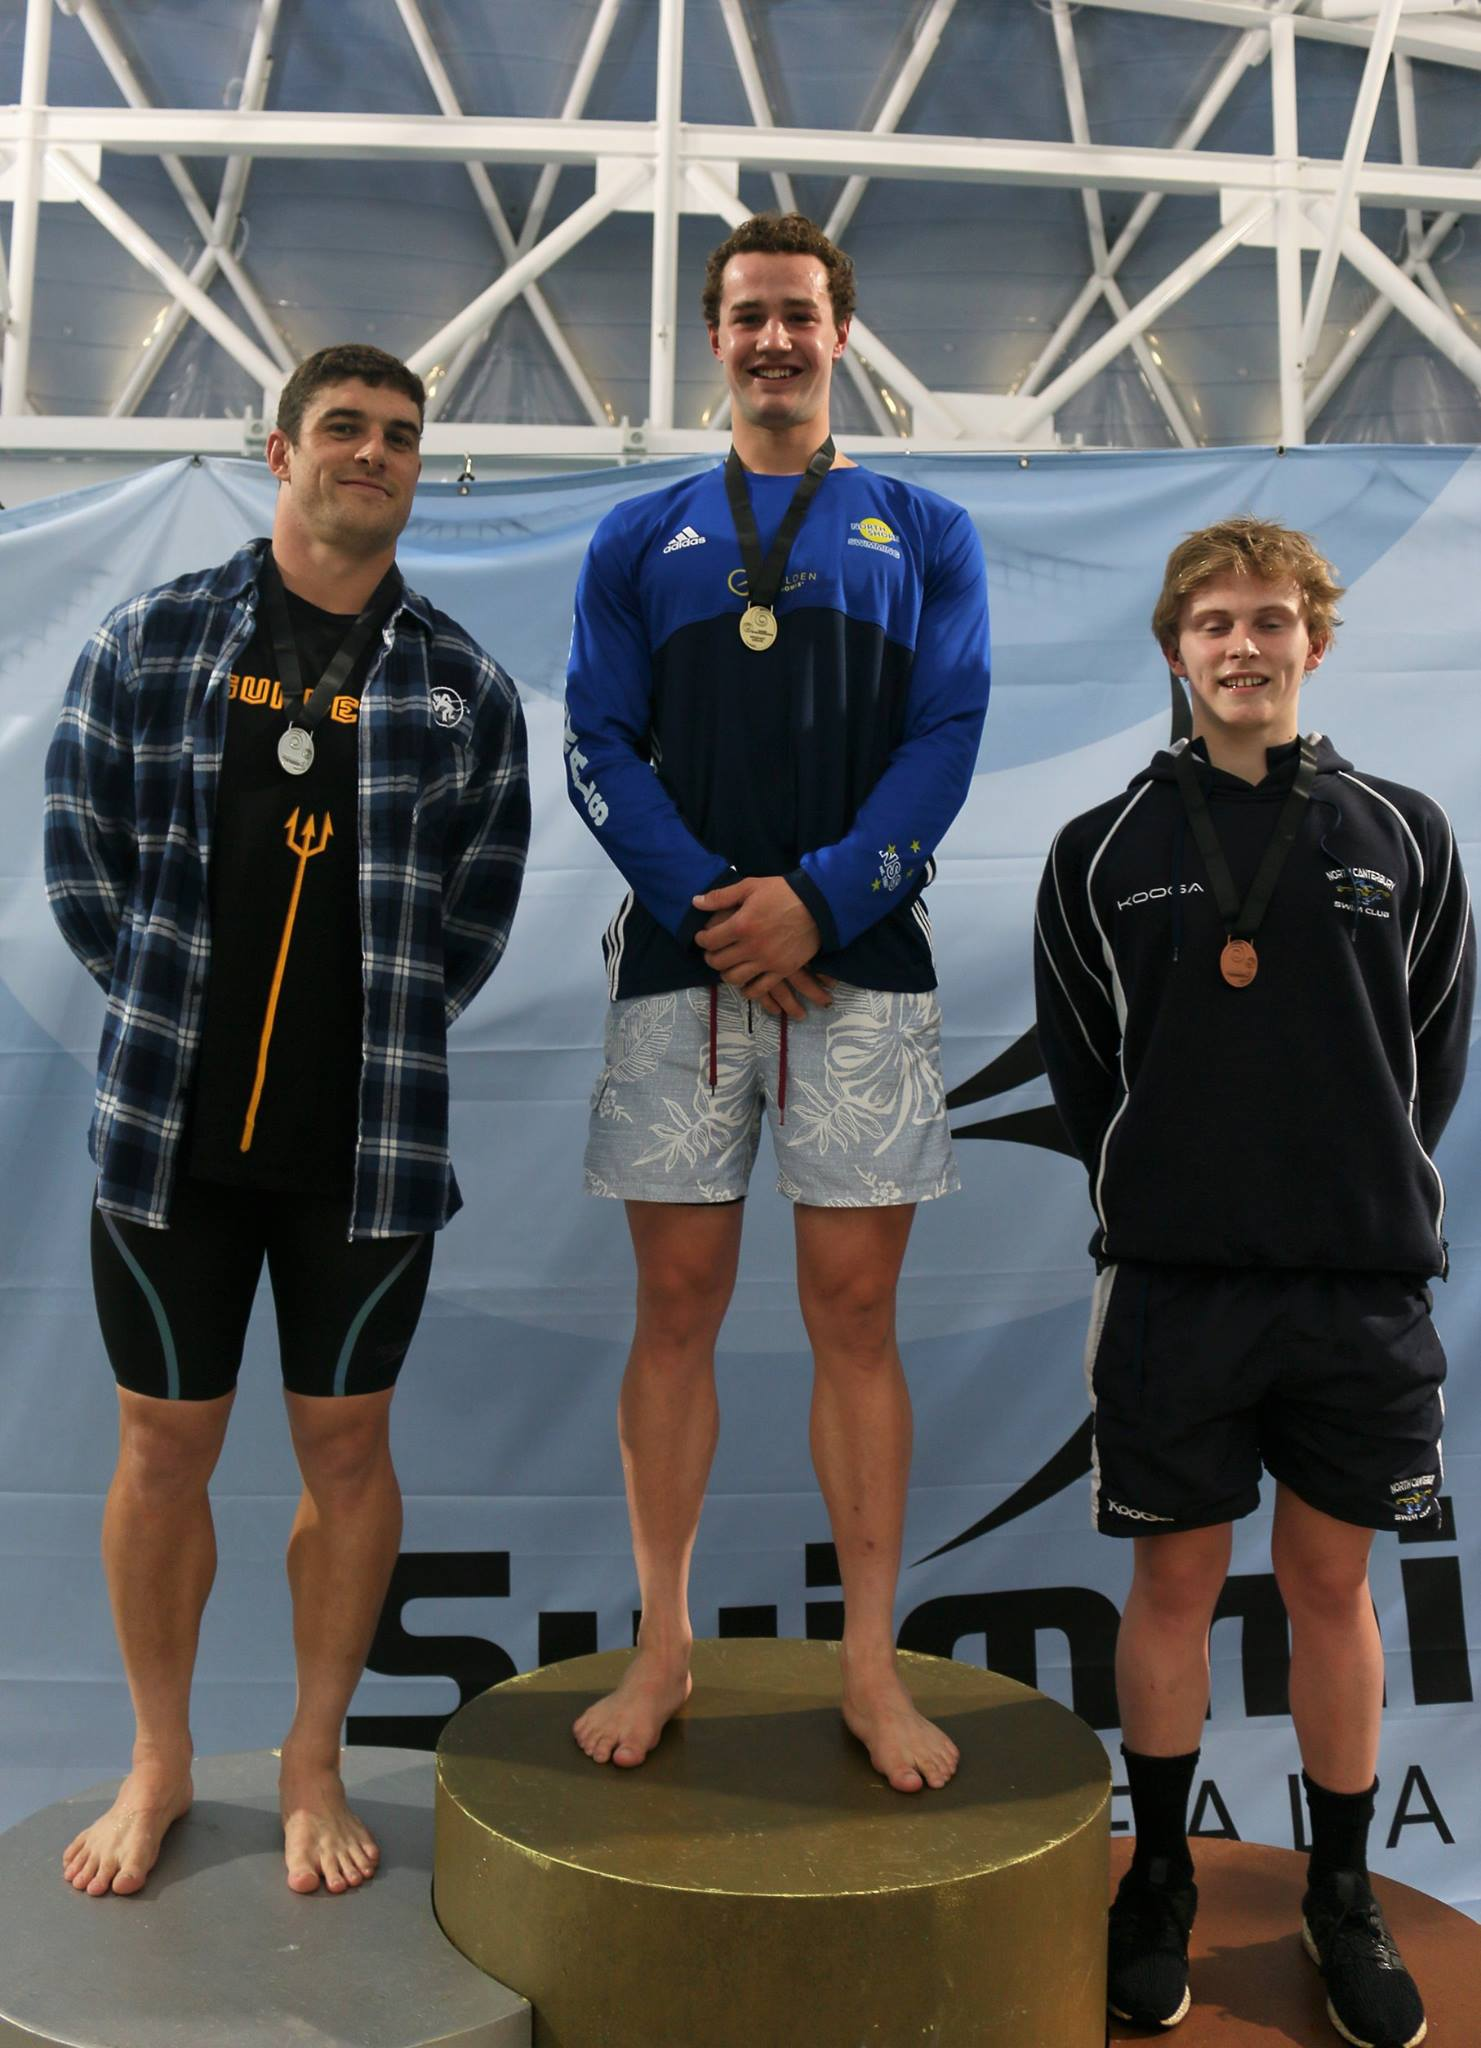 HBPB Swimmer Wins Open Medal